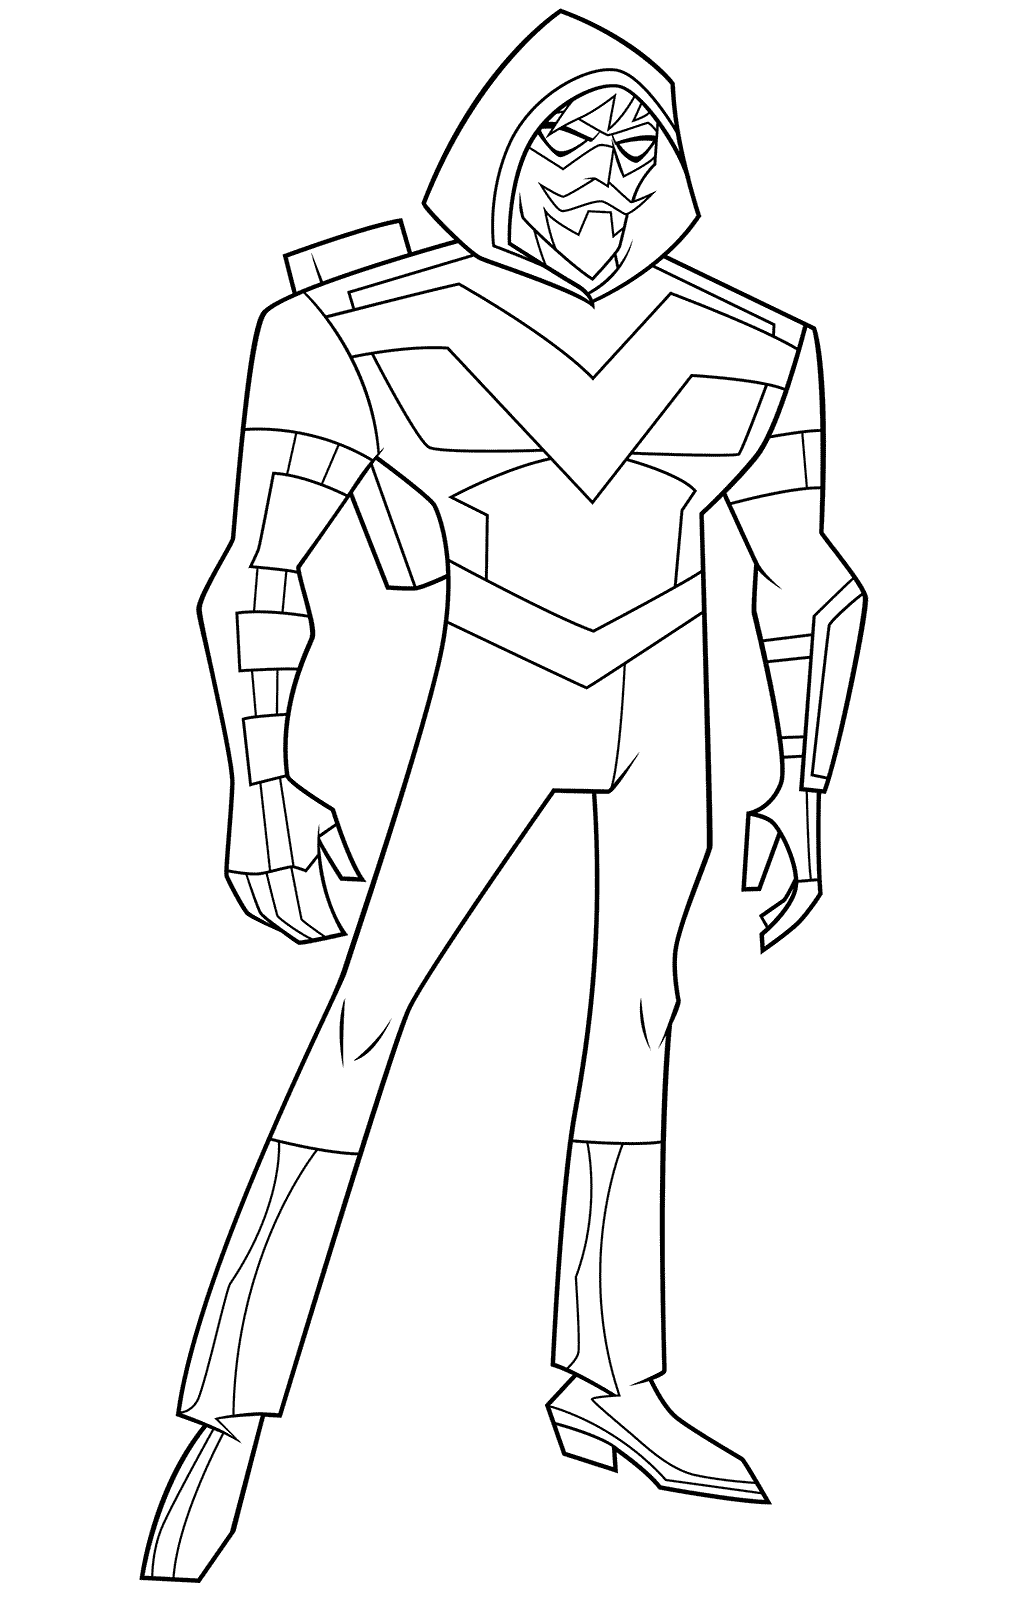 Green Arrow Coloring Pages Best Coloring Pages For Kids In 2020 Green Arrow Coloring Pages Coloring Pages For Kids